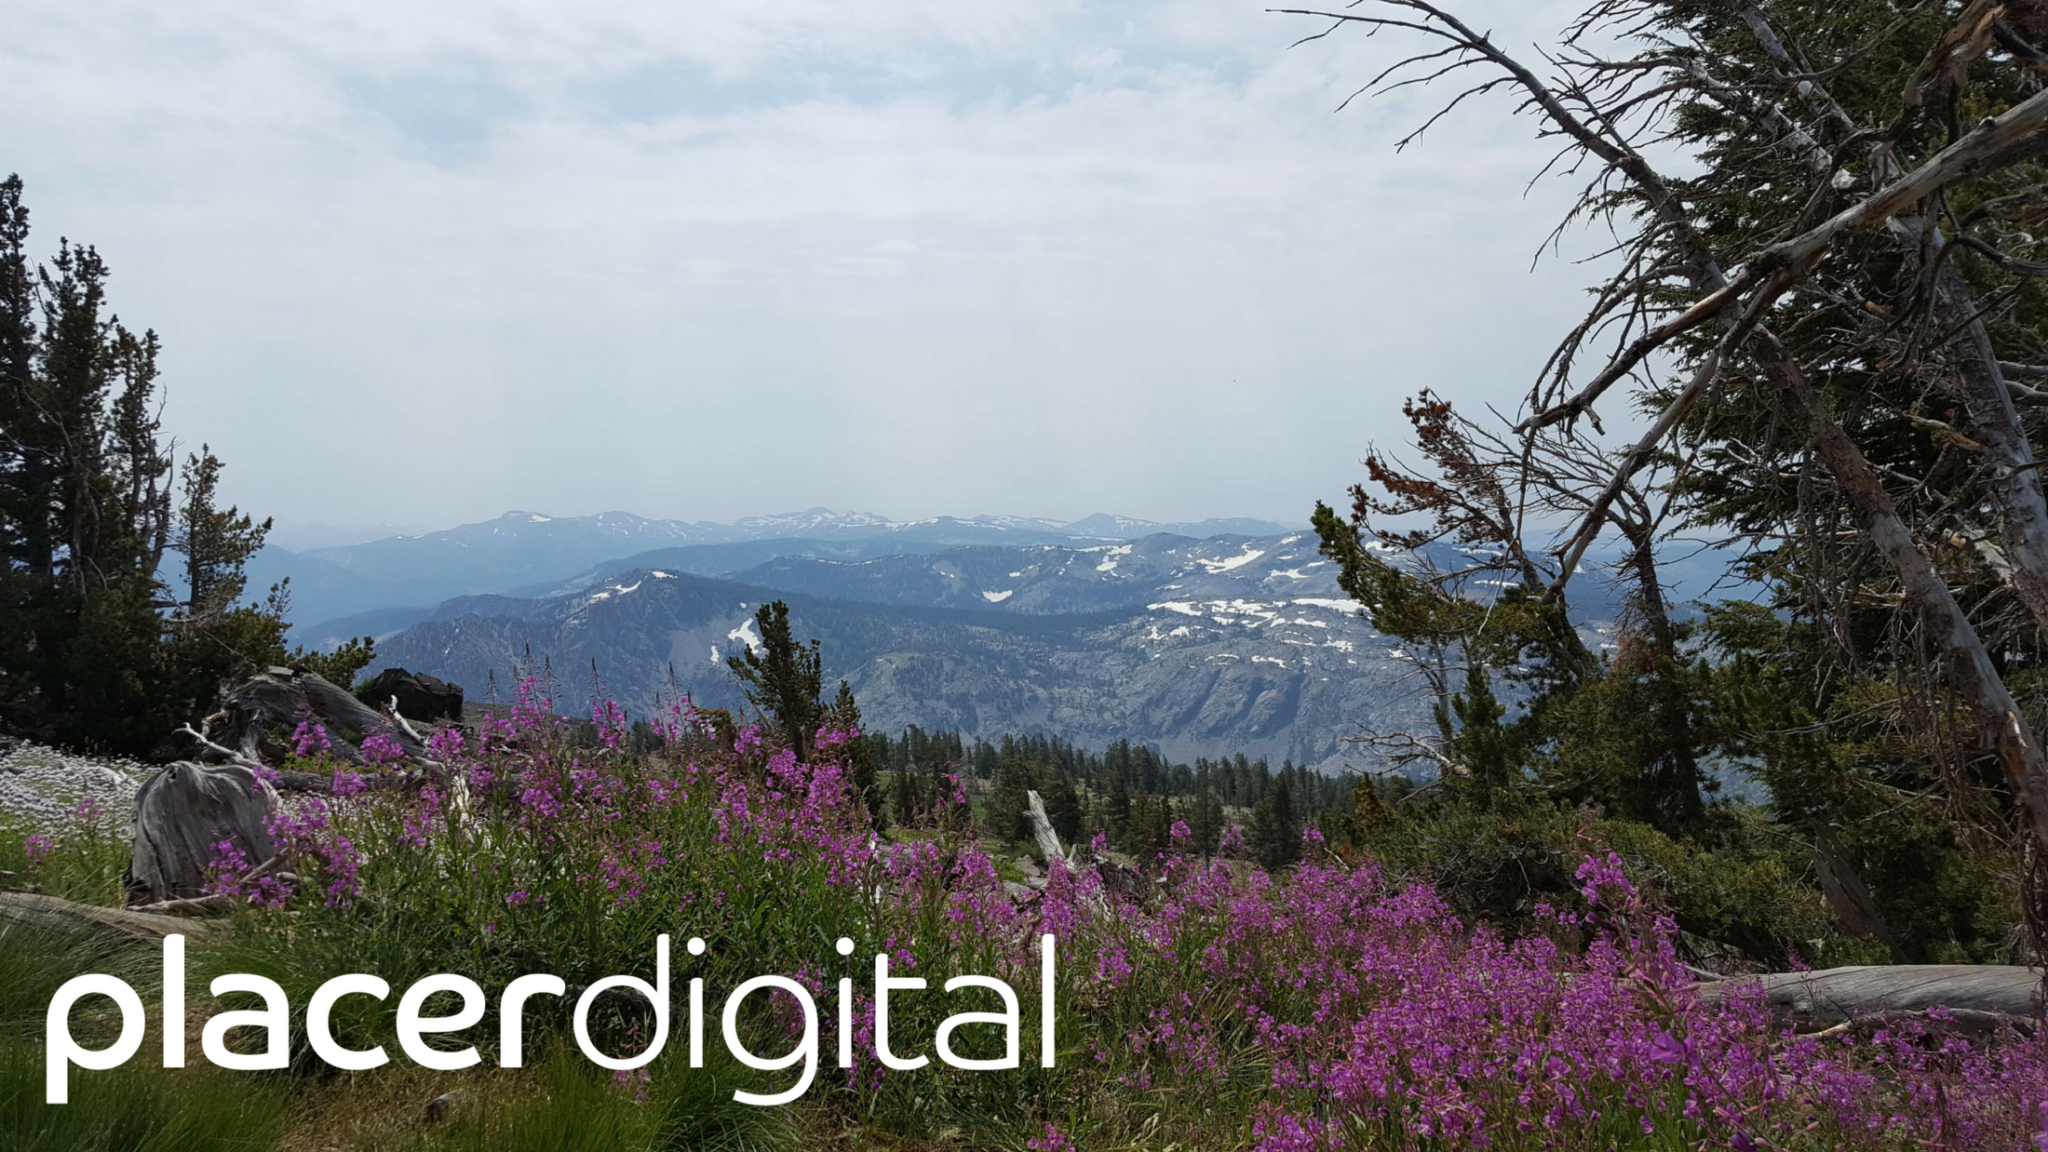 placer digital trail directory